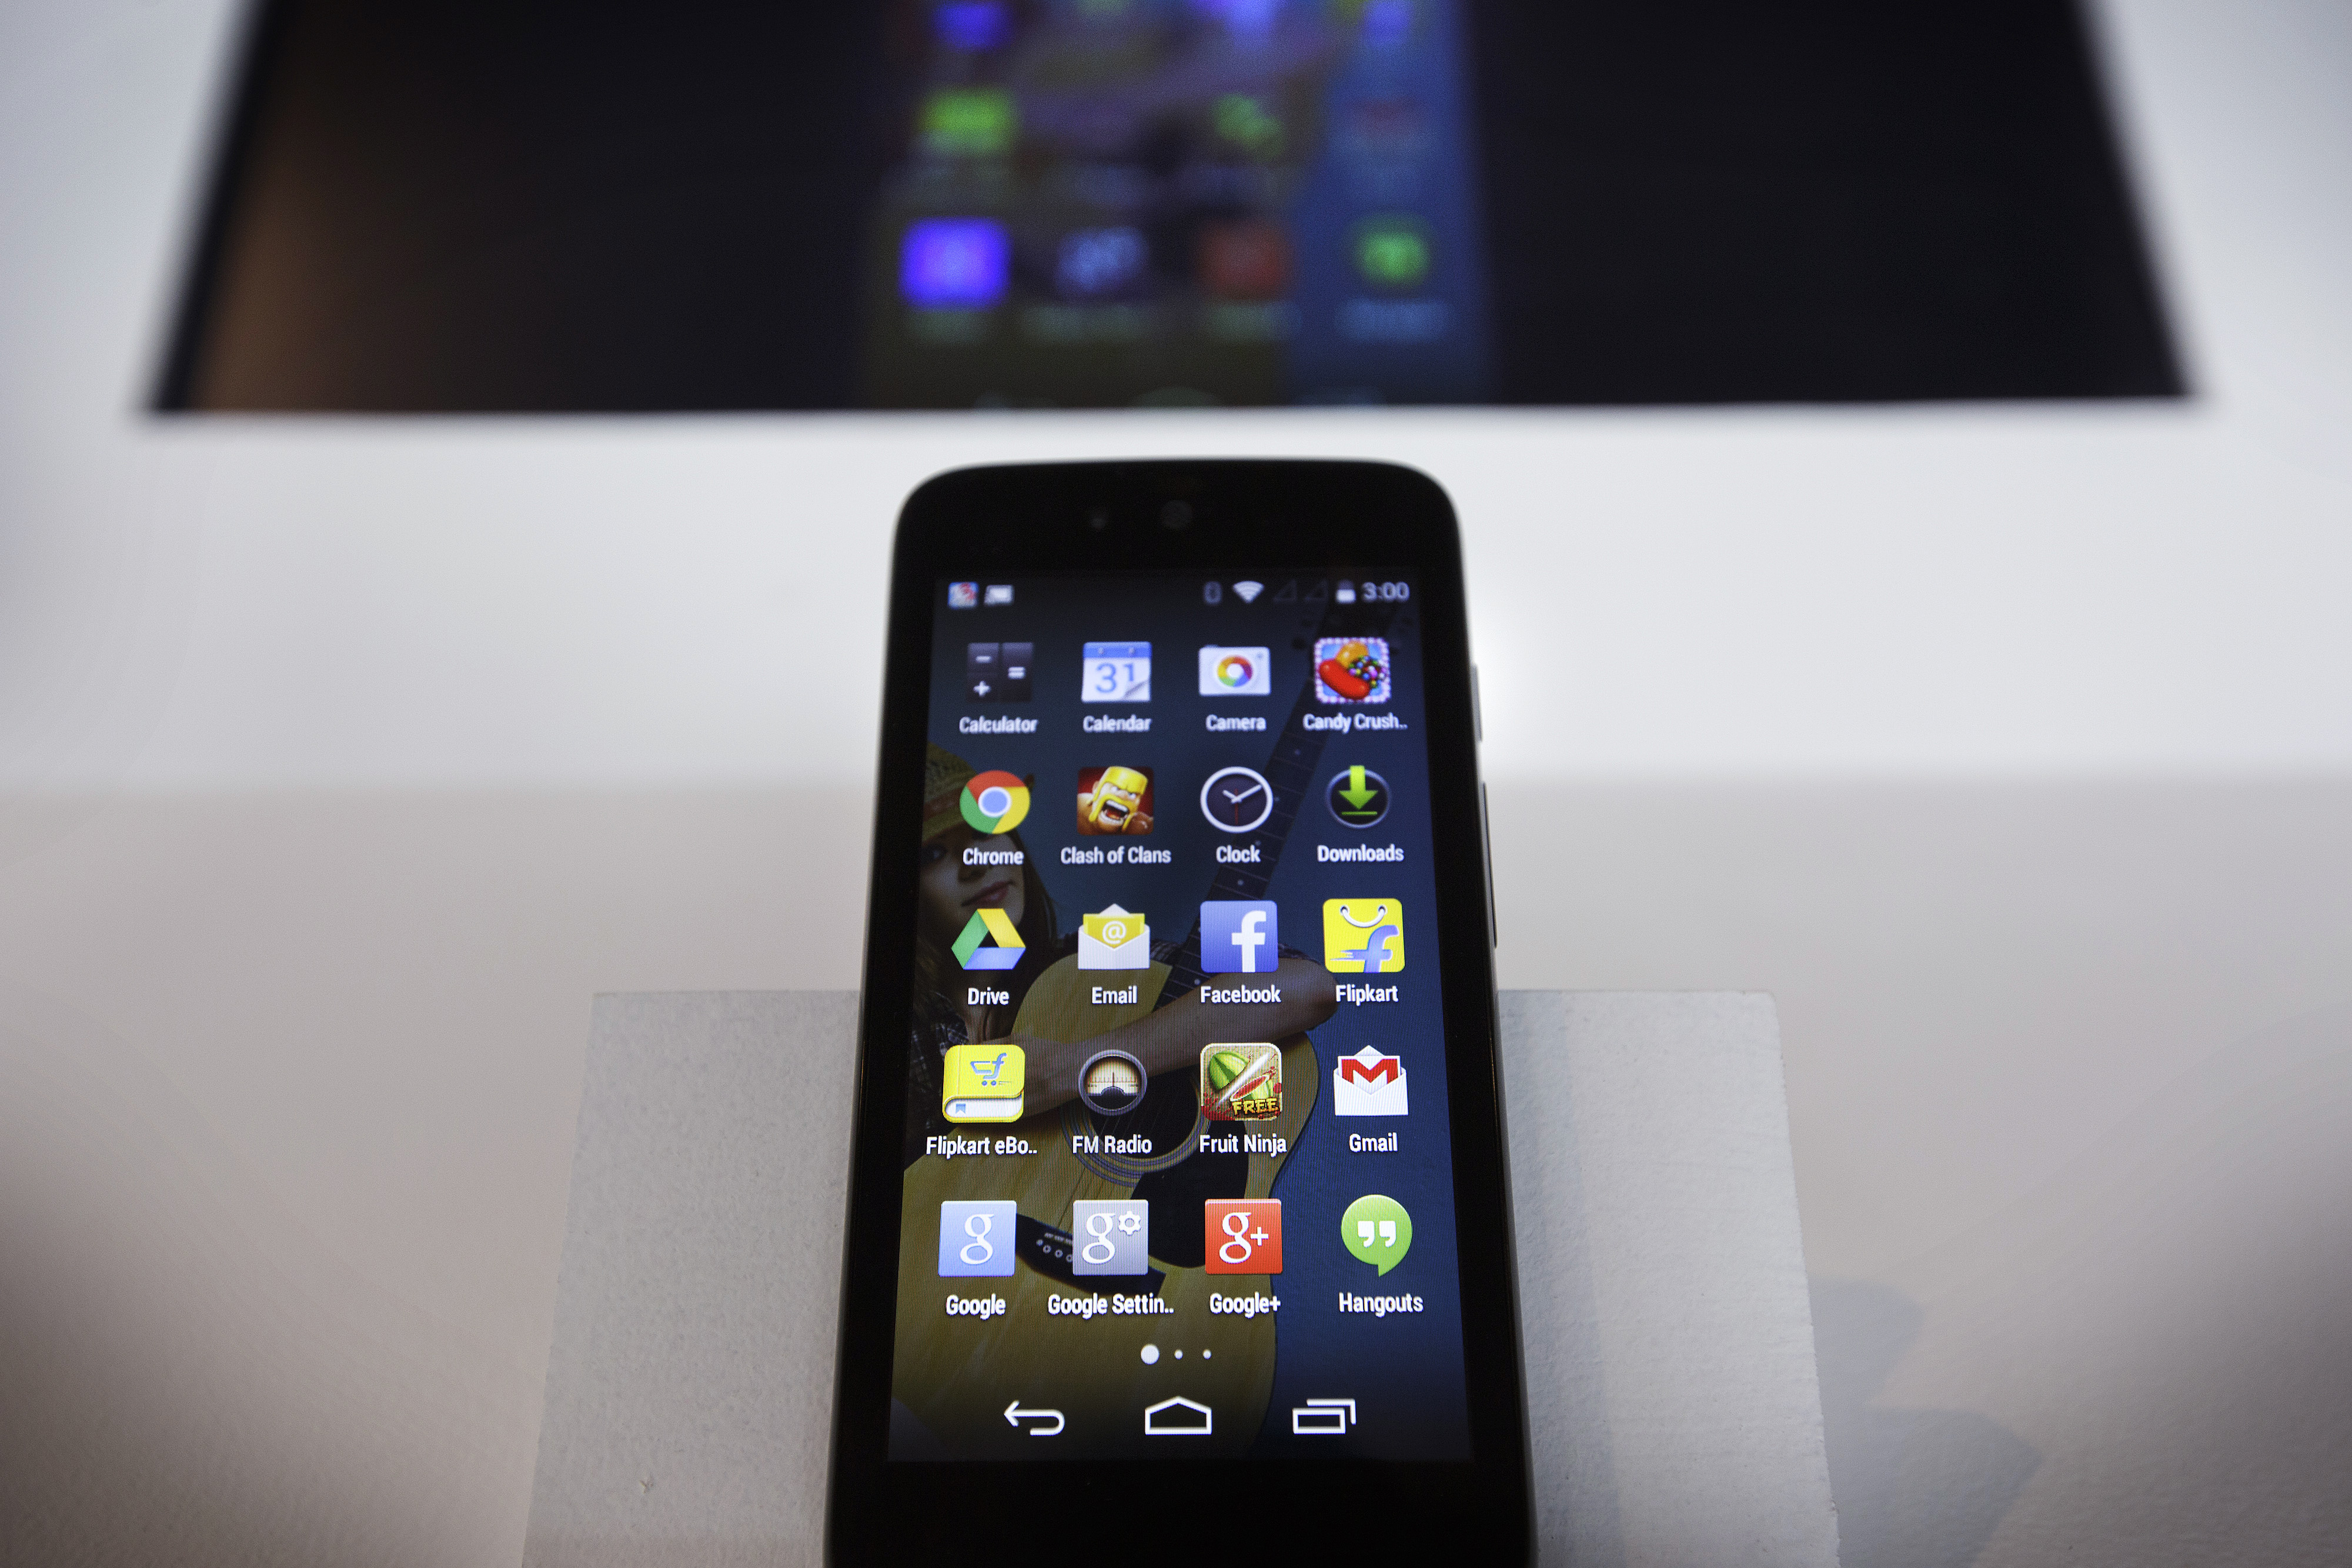 The Spice Android One Dream Uno smartphone manufactured by Spice Mobility Ltd. sits on display during the Google Inc. Android One smartphone launch event in New Delhi, India, on Monday, Sept. 15, 2014.